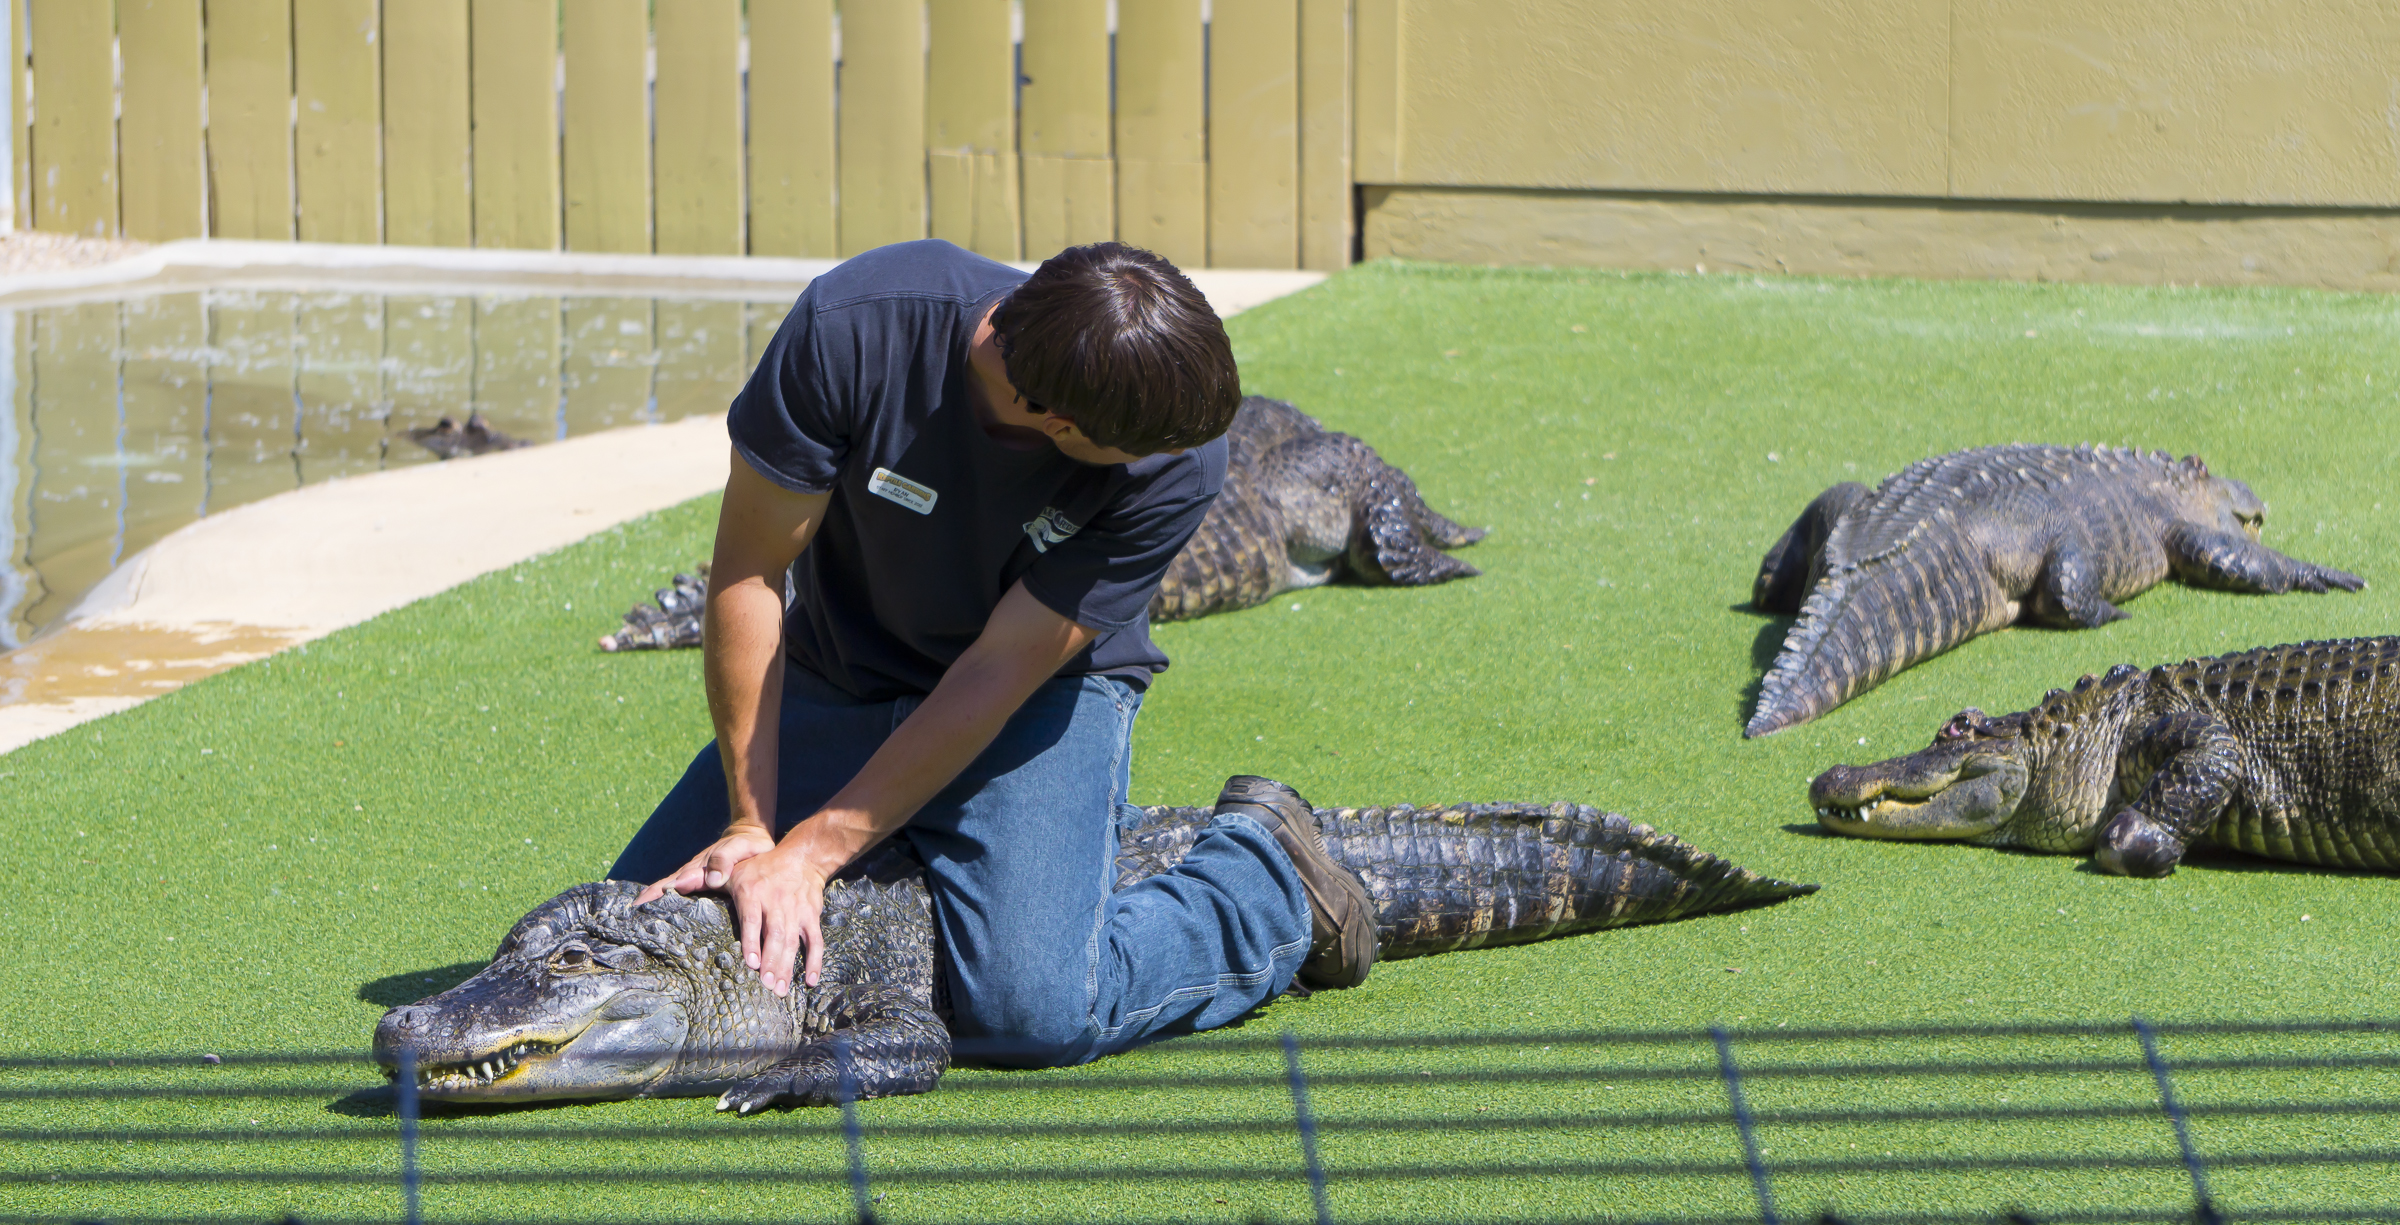 Alligator wrangler at Reptile Gardens, Rapid City, SD